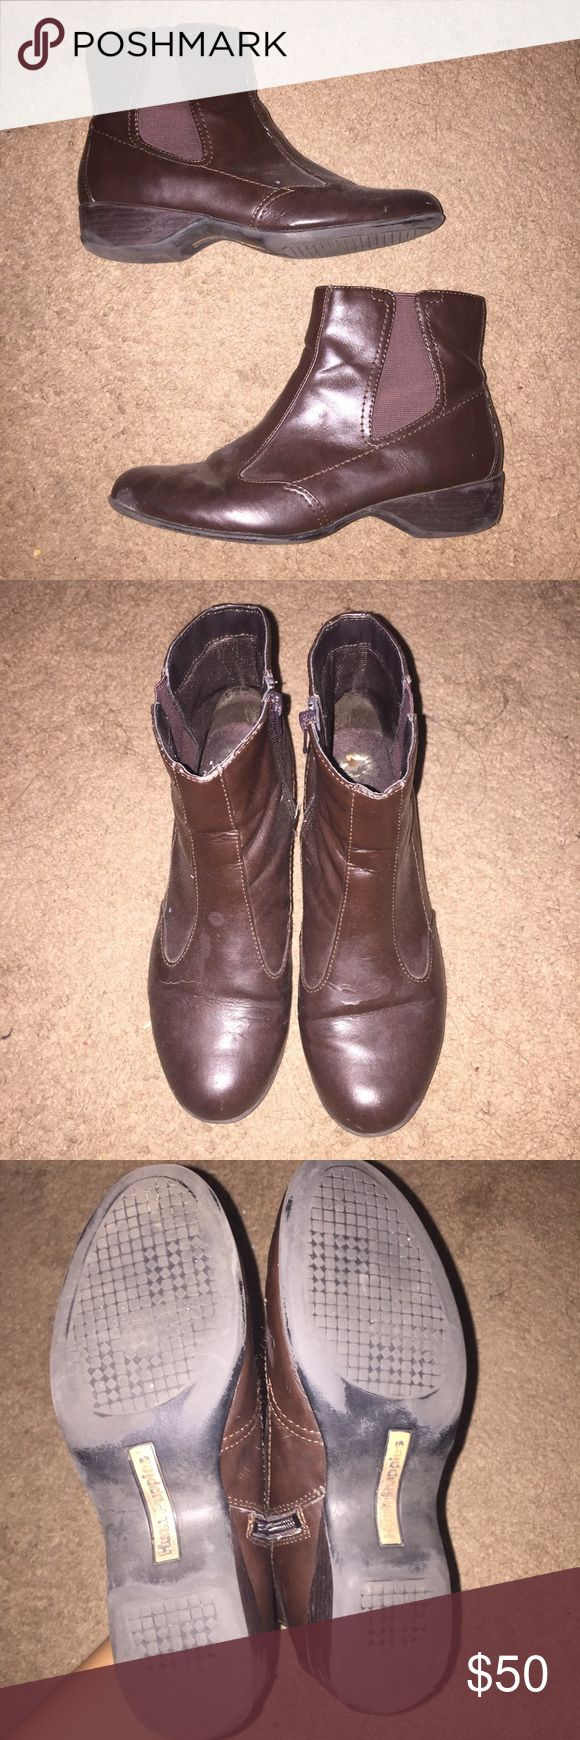 Hush Puppies Ankle Boots Rarely worn. In great condition. Hush Puppies Shoes Ankle Boots & Booties